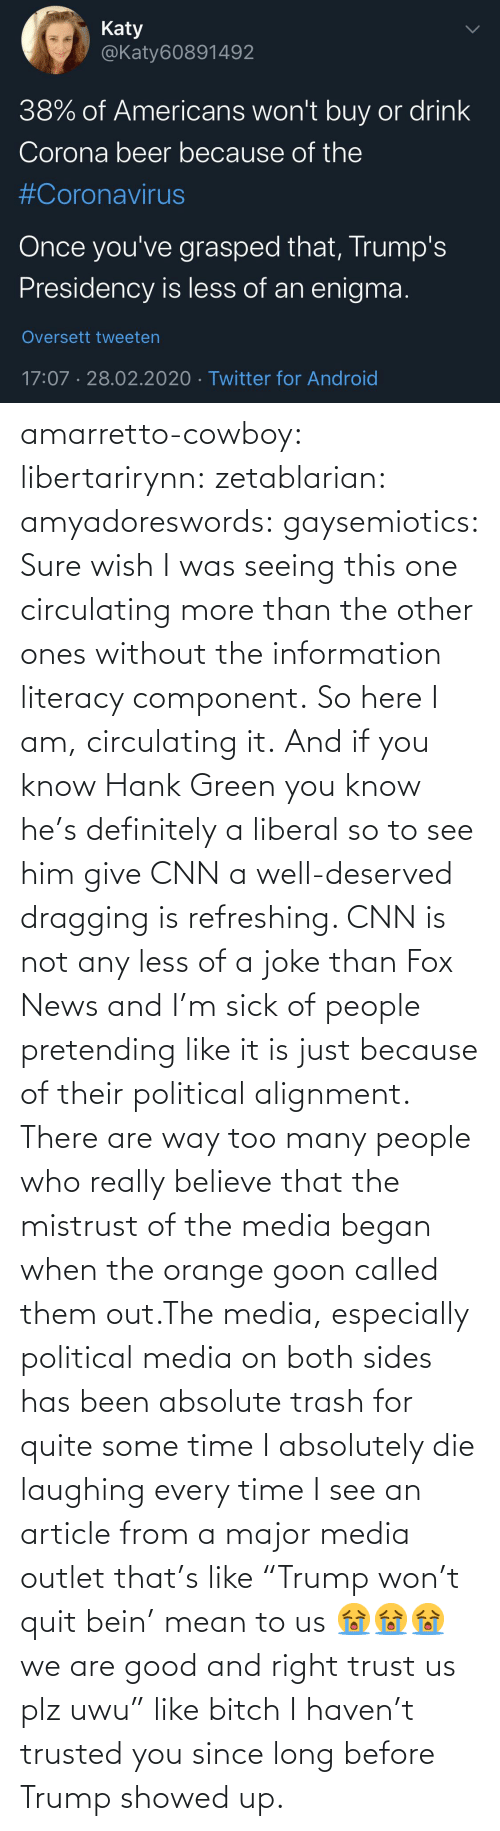 "seeing: amarretto-cowboy:  libertarirynn:  zetablarian:  amyadoreswords:   gaysemiotics:       Sure wish I was seeing this one circulating more than the other ones without the information literacy component. So here I am, circulating it.    And if you know Hank Green you know he's definitely a liberal so to see him give CNN a well-deserved dragging is refreshing. CNN is not any less of a joke than Fox News and I'm sick of people pretending like it is just because of their political alignment.   There are way too many people who really believe that the mistrust of the media began when the orange goon called them out.The media, especially political media on both sides has been absolute trash for quite some time   I absolutely die laughing every time I see an article from a major media outlet that's like ""Trump won't quit bein' mean to us 😭😭😭 we are good and right trust us plz uwu"" like bitch I haven't trusted you since long before Trump showed up."